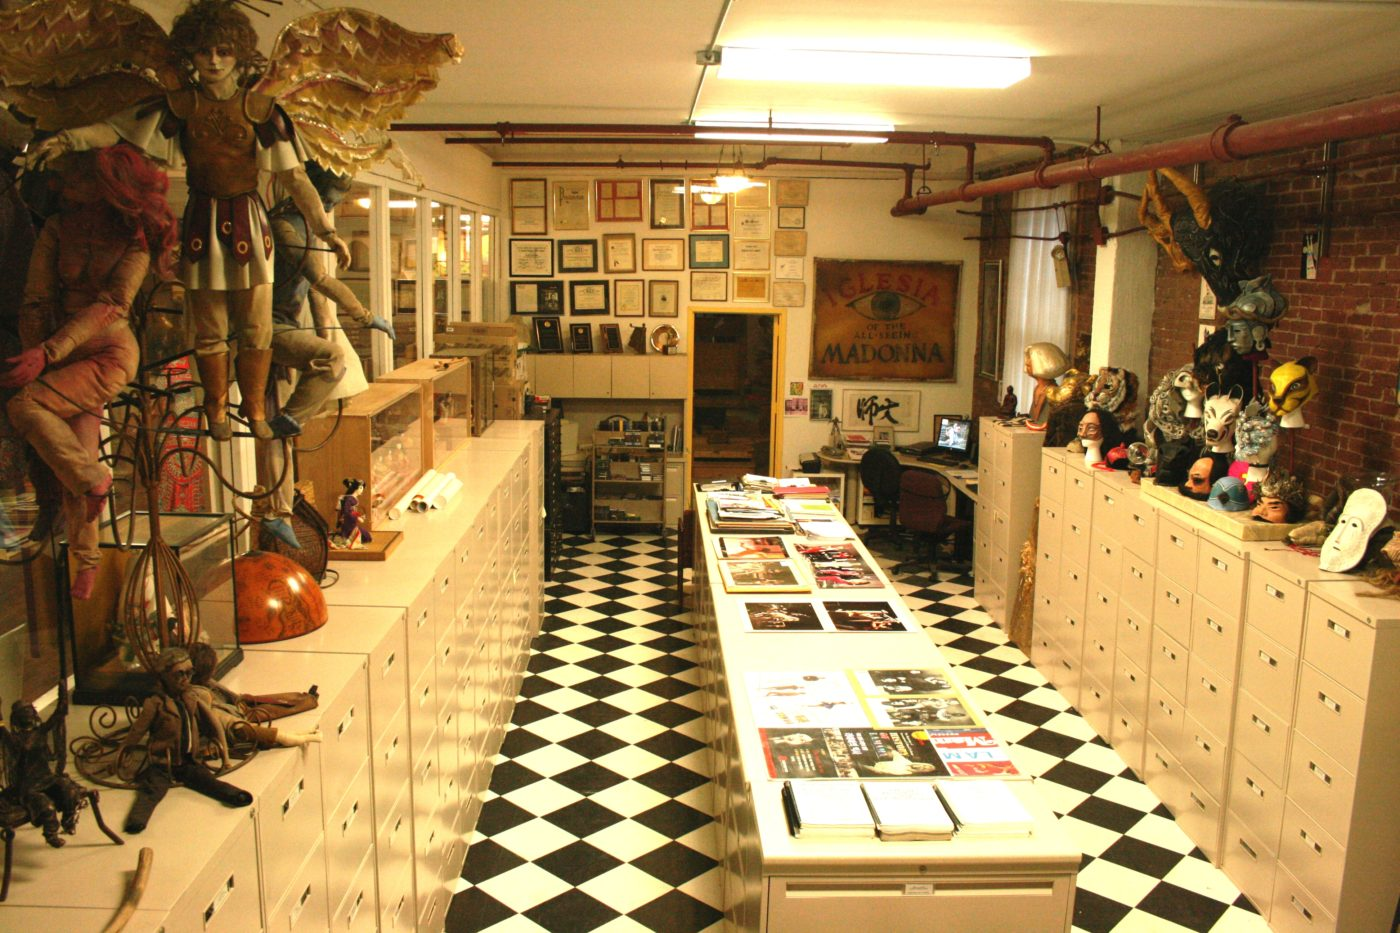 photo of the la mama archive office lined with file cabinets and puppets hanging above them on the walls with framed awards